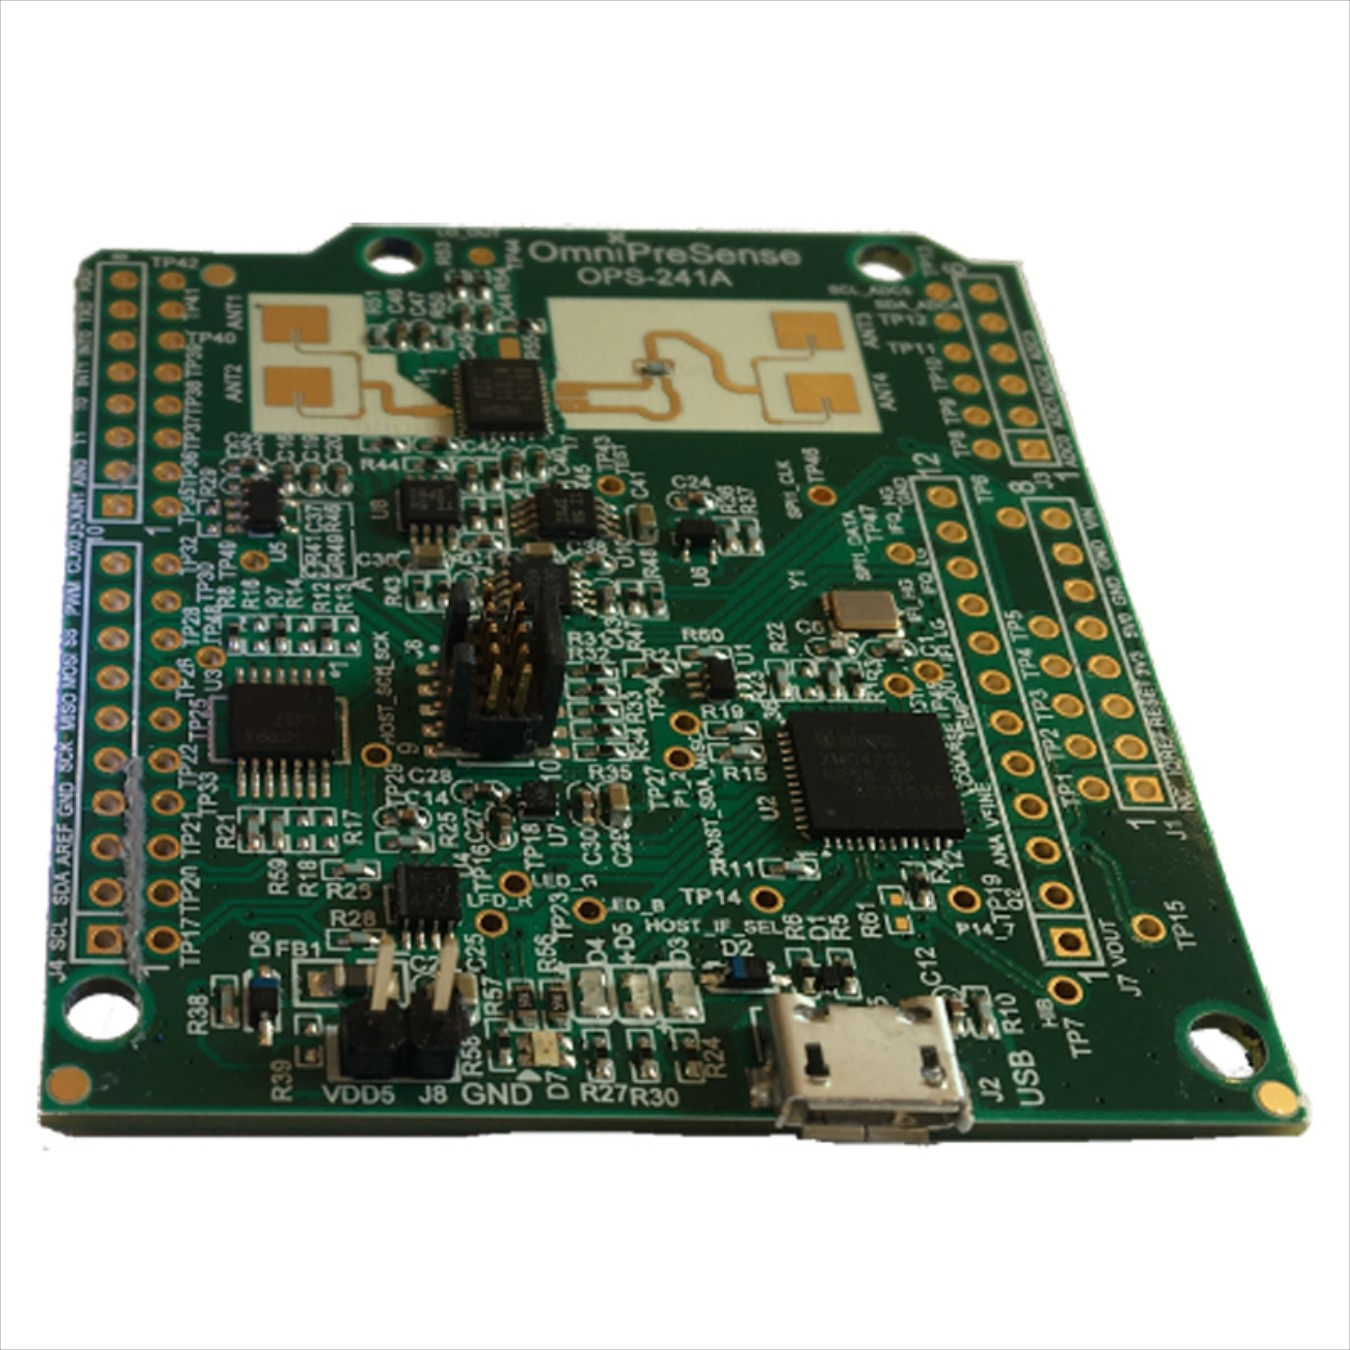 Free Shipping For OmniPreSense Doppler Short-range Speed Radar OPS241-BFMCW Arduino Compatible